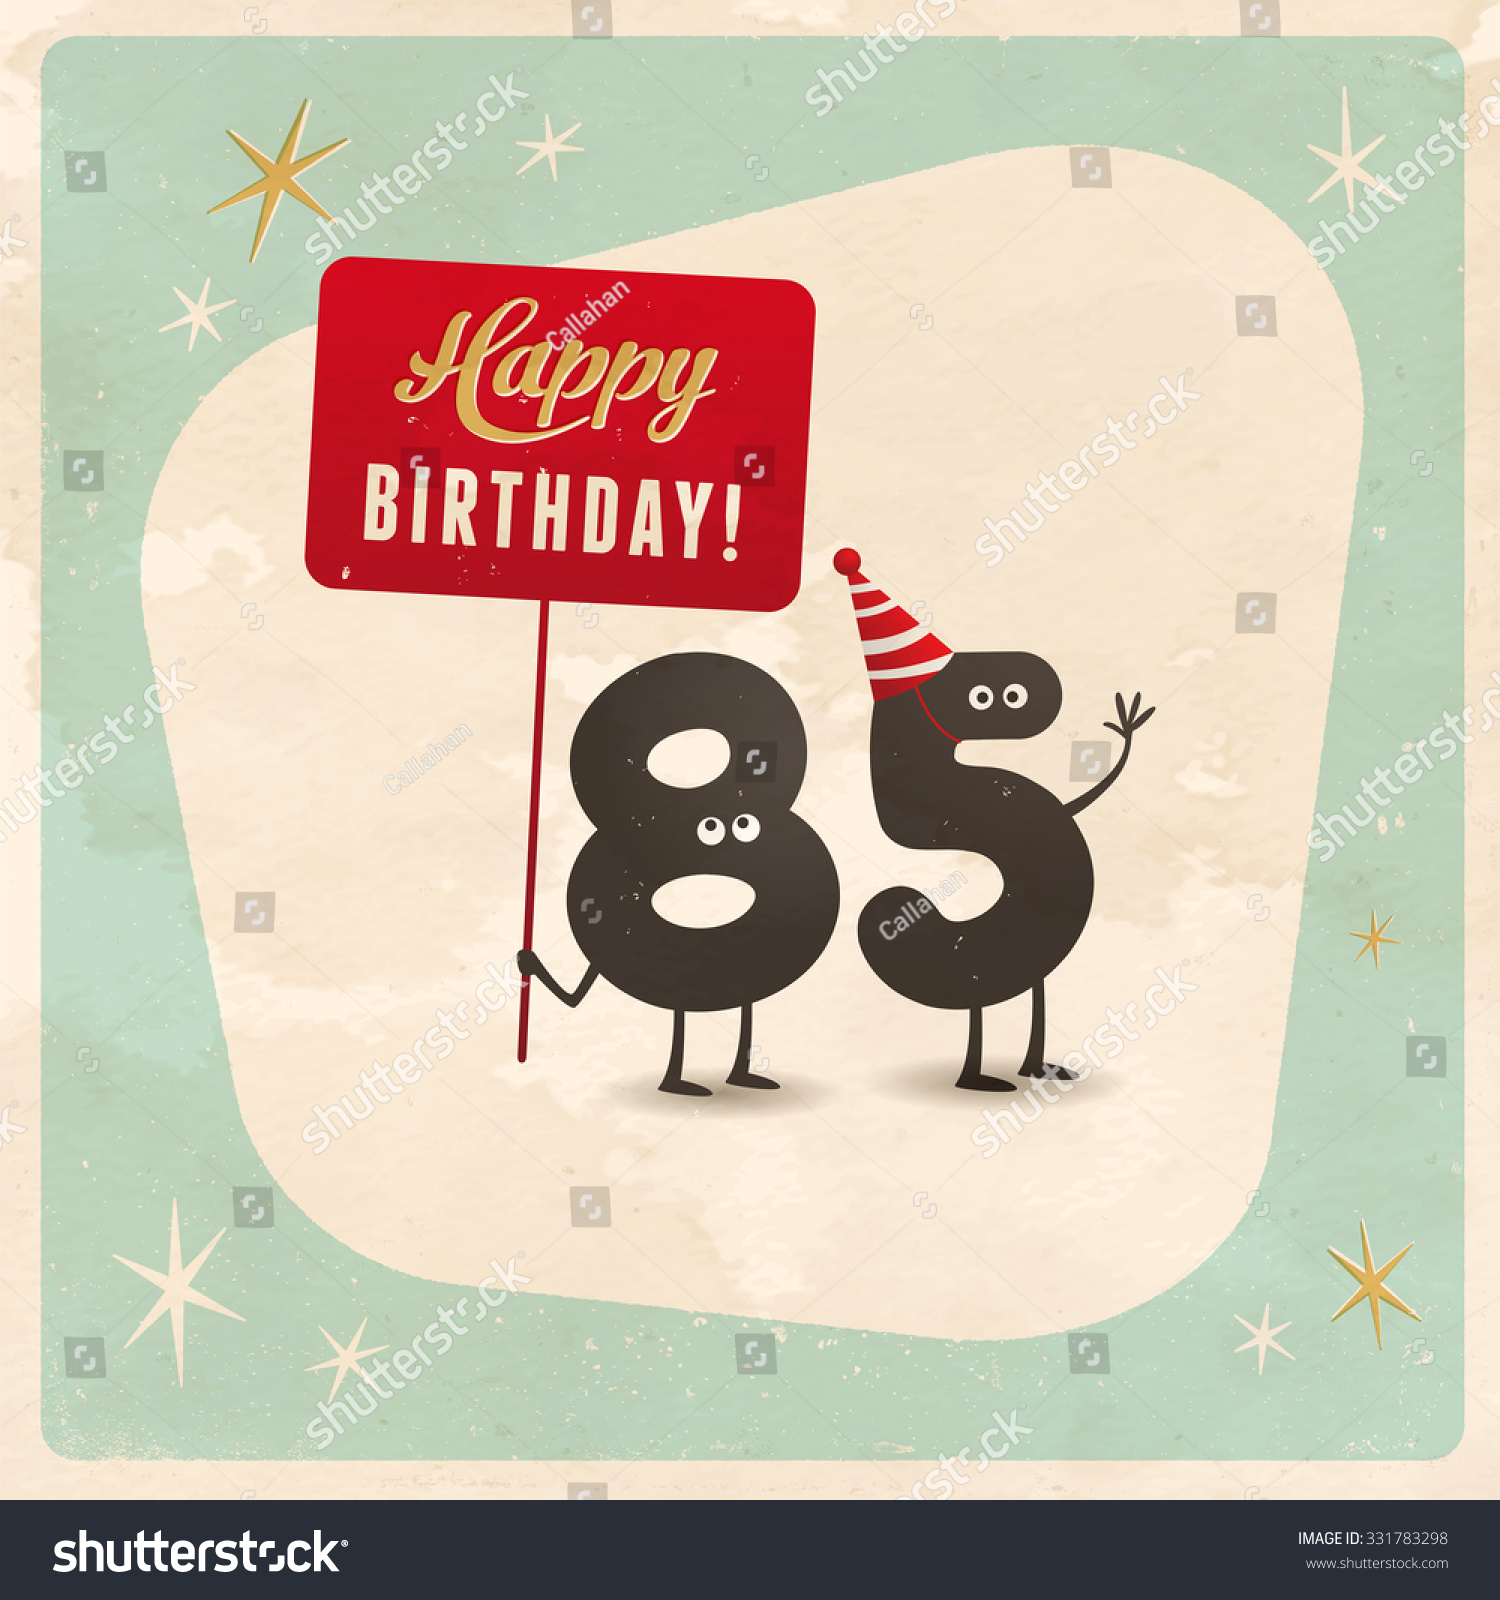 Vintage Style Funny 85th Birthday Card